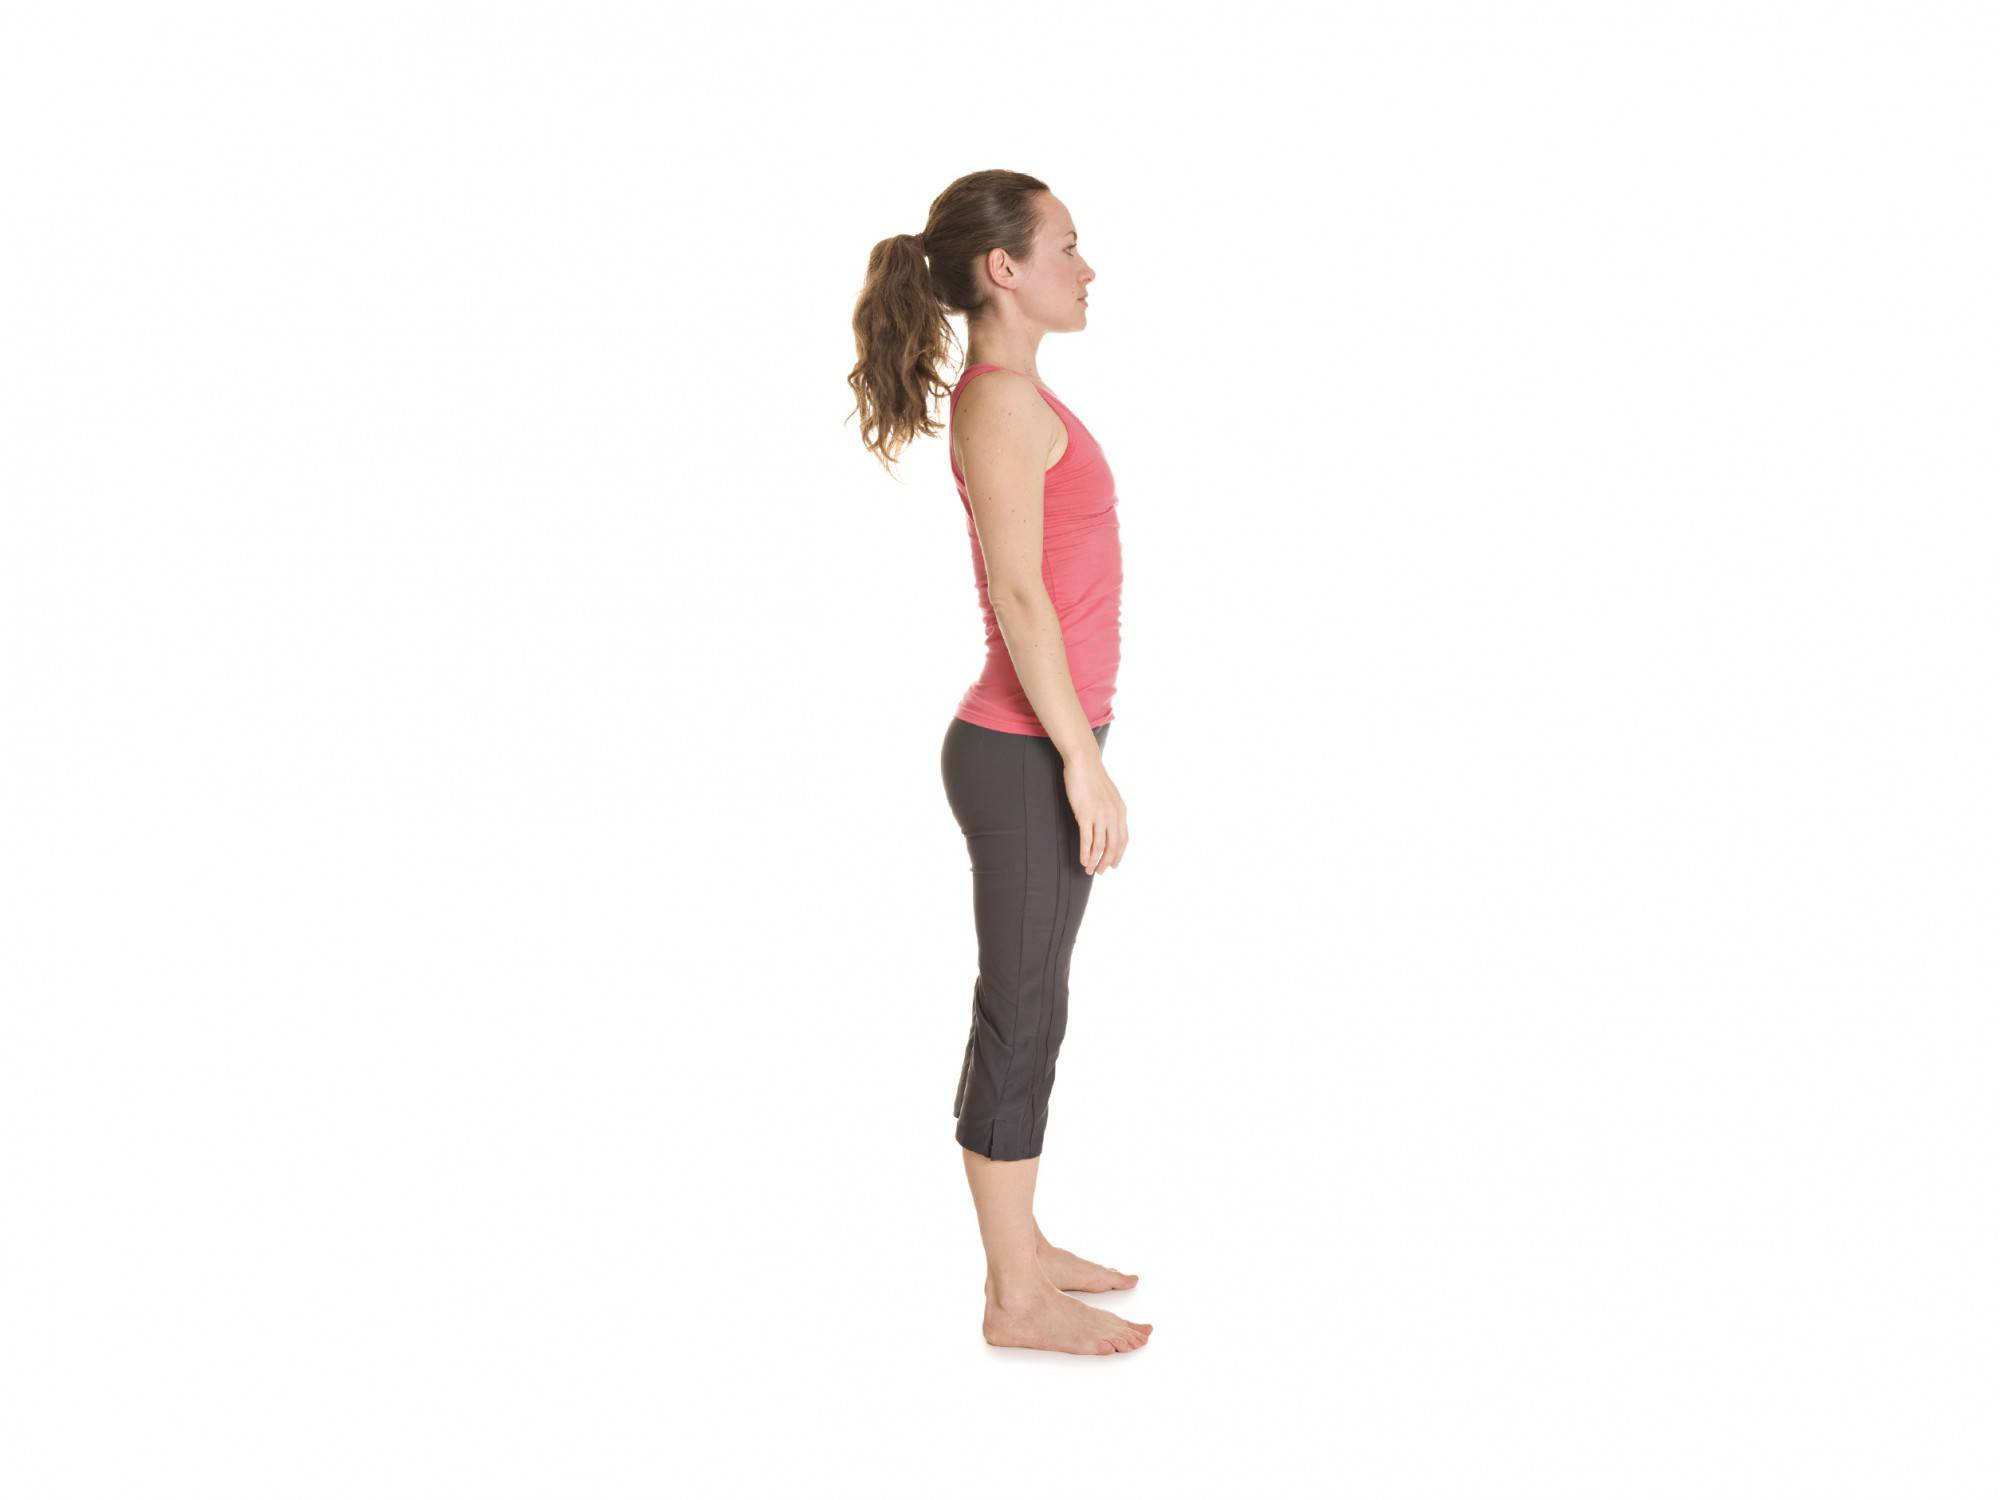 Exercises to correct your posture